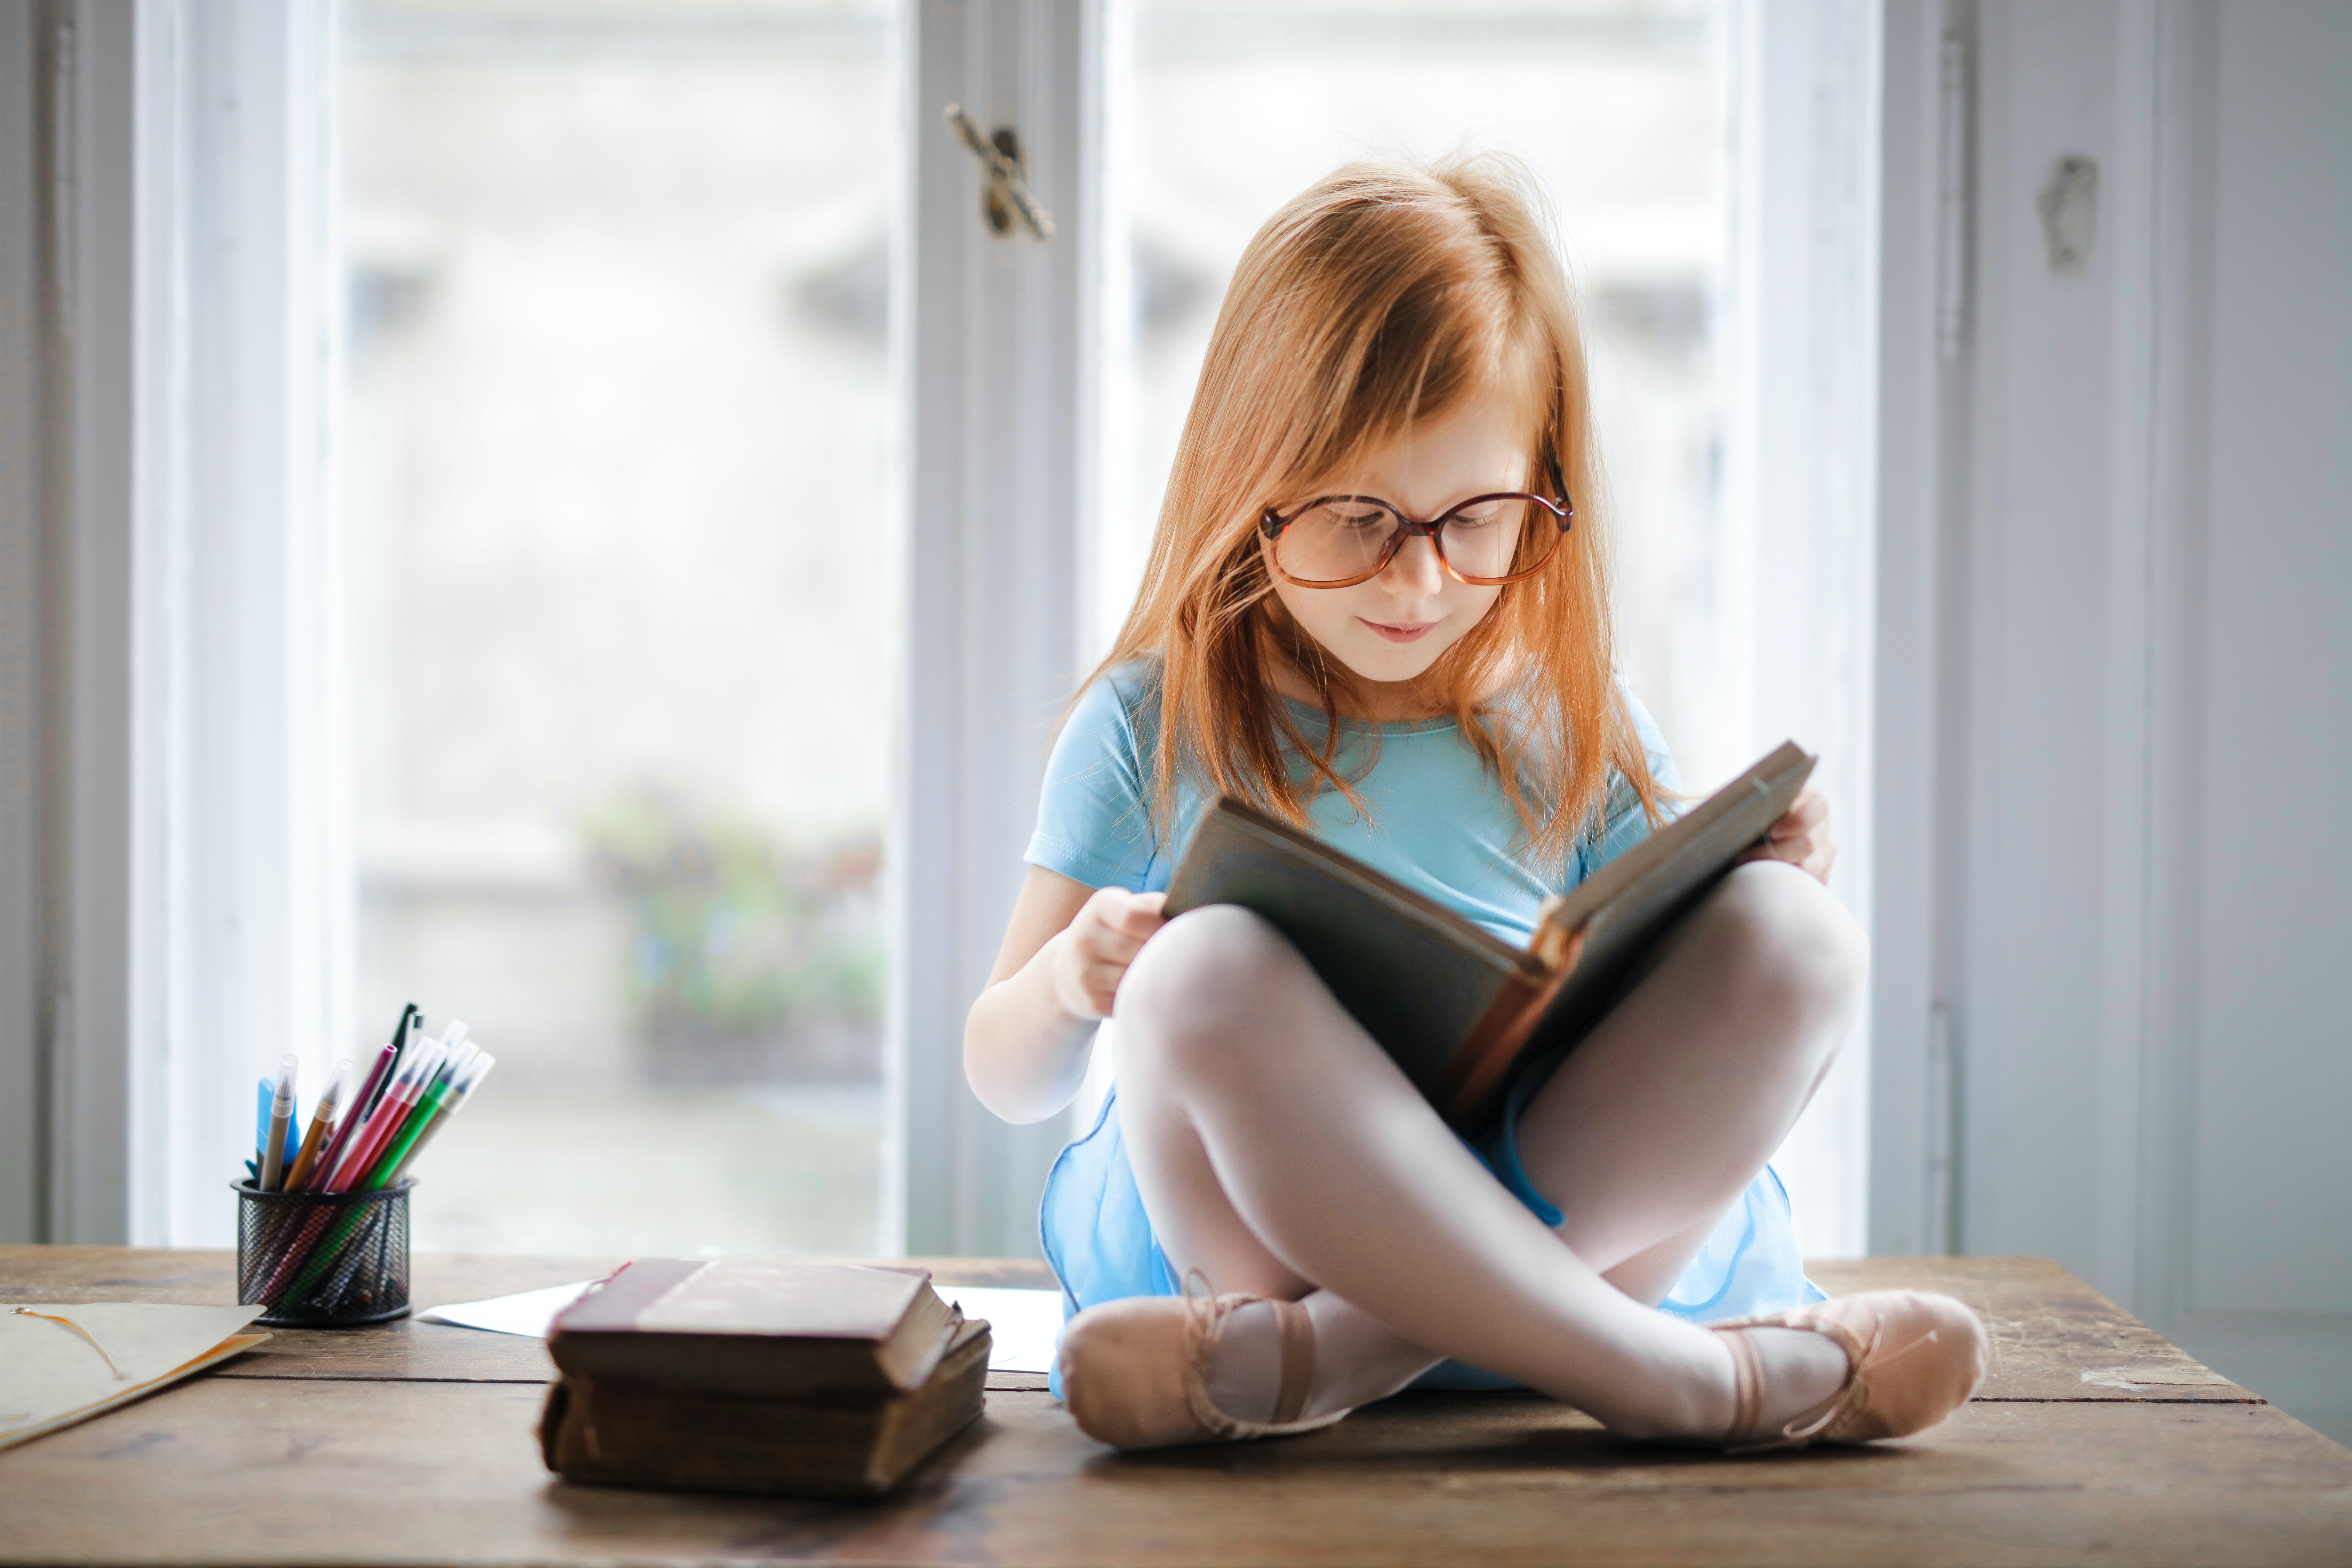 5 Dramatic Monologues for Kids